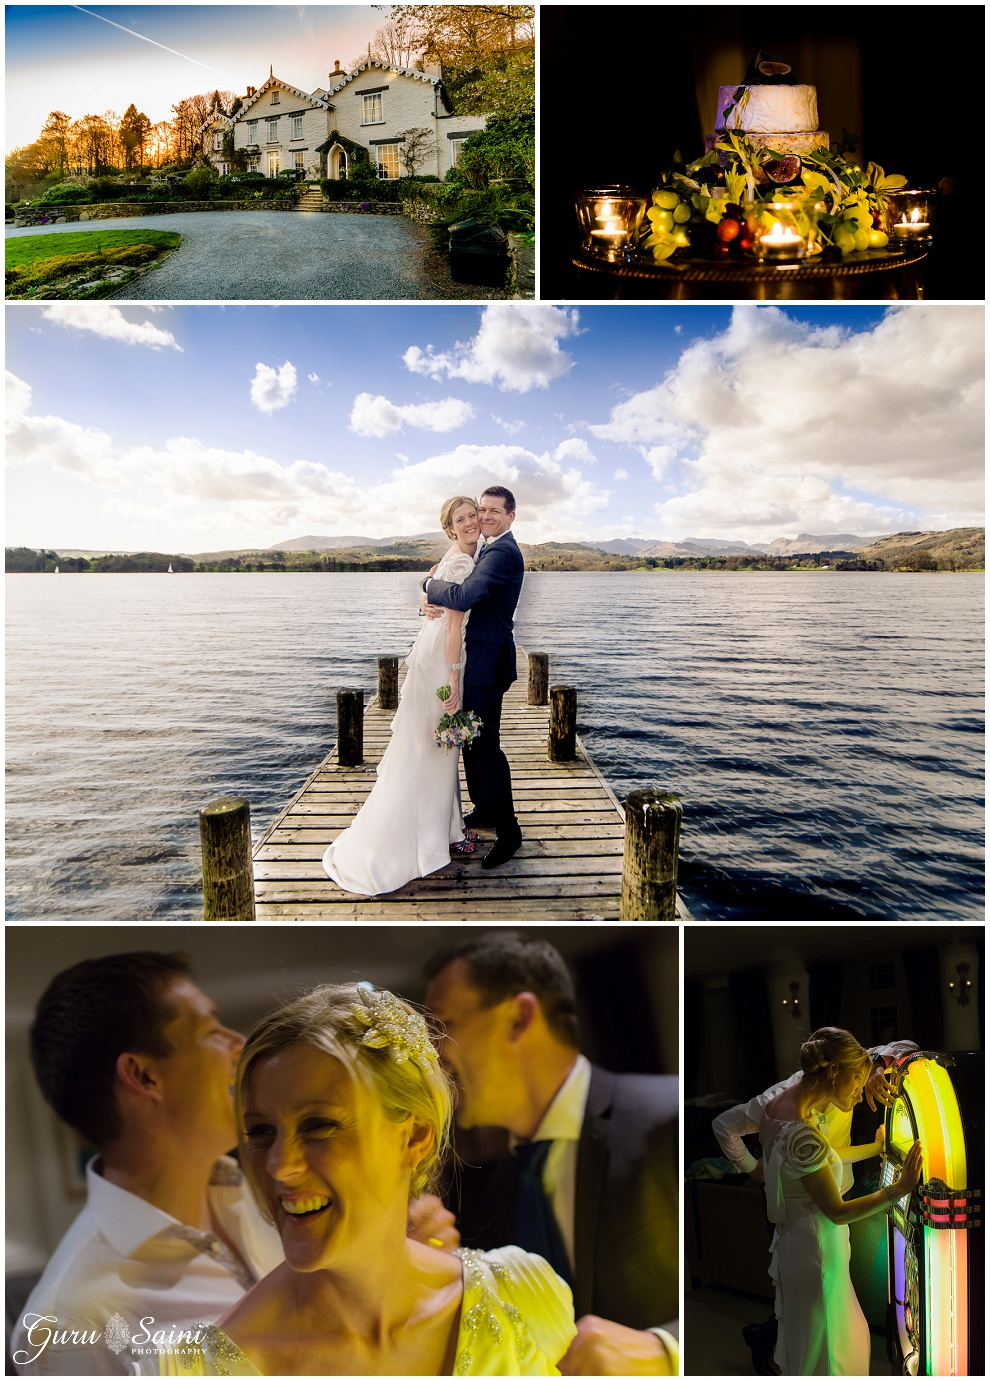 Wedding-Photography-Elegant-Romatic-Lake-Dictrict-London-Surrey-Guru-Saini-Photography